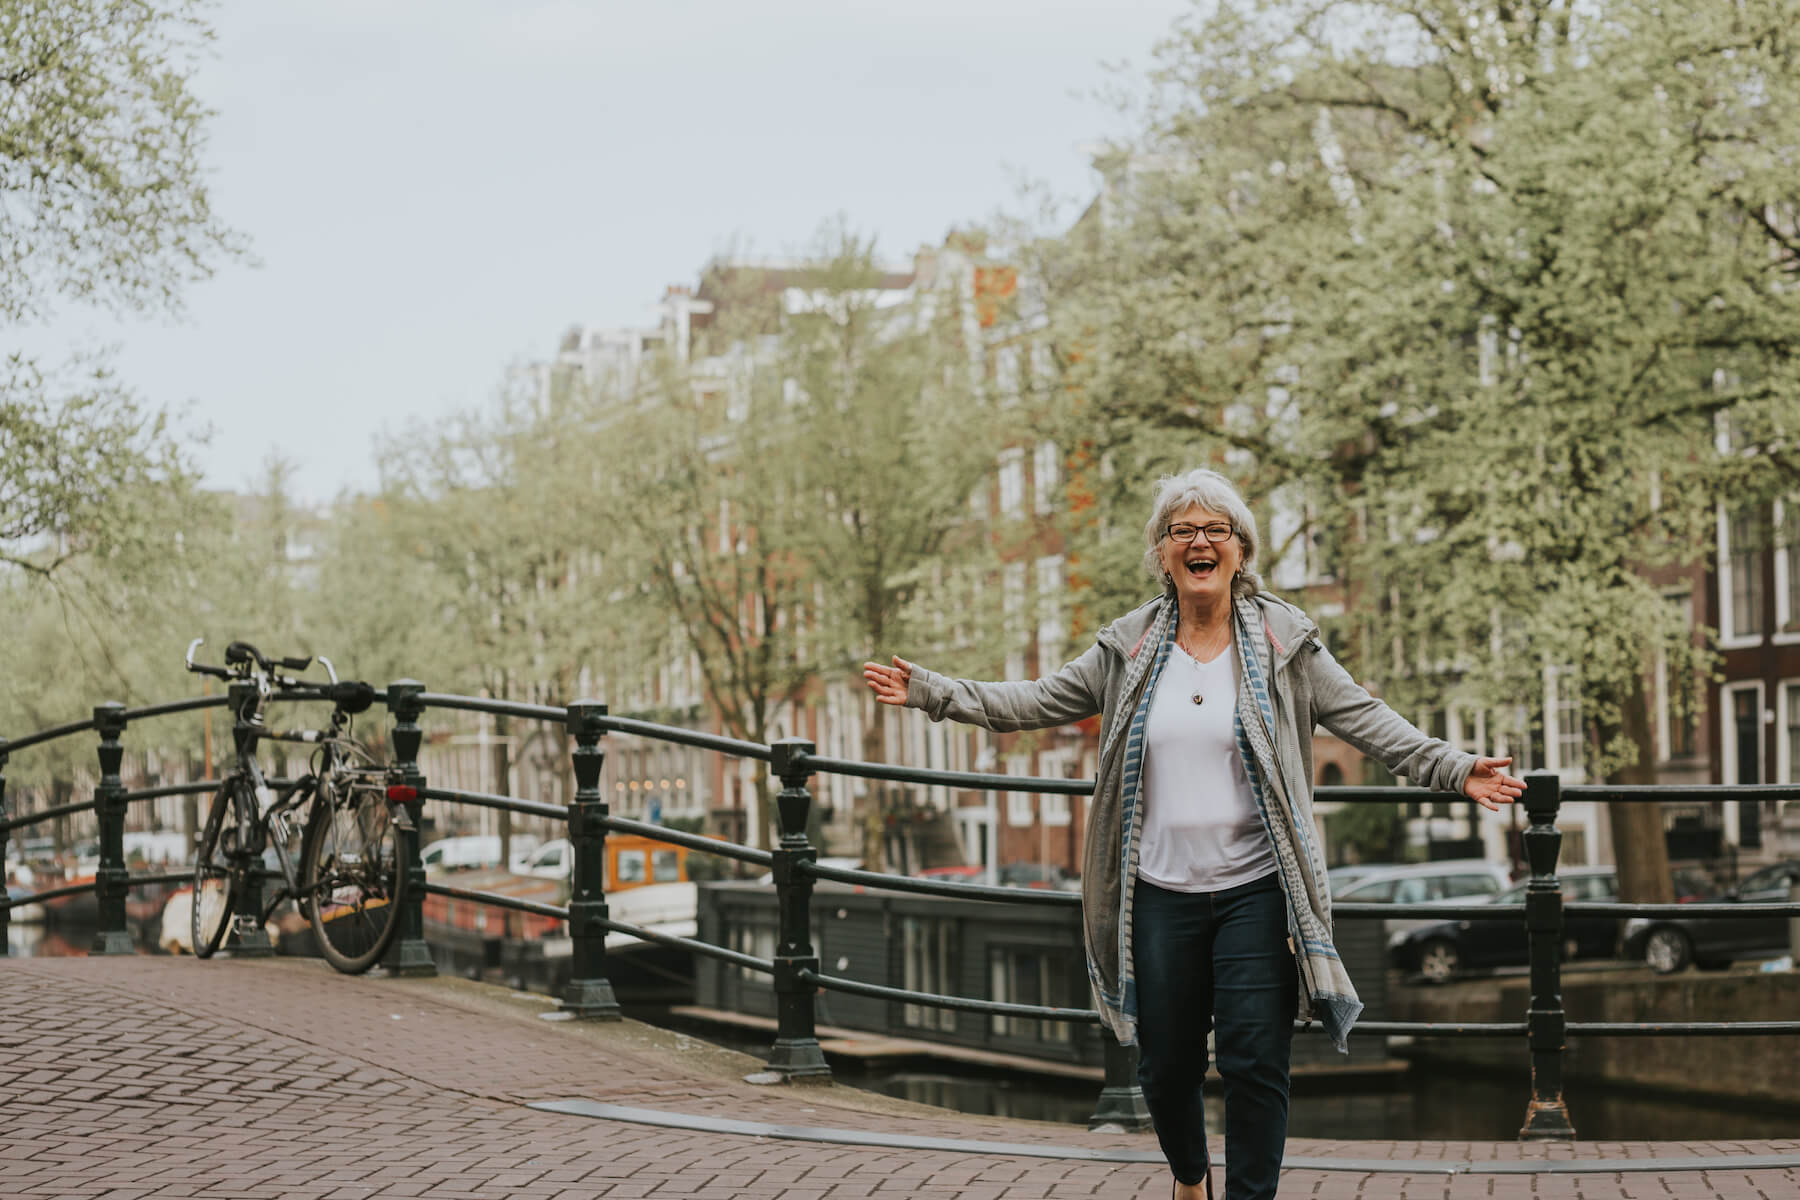 solo traveller standing on a bridge with her hands out in Amsterdam, Netherlands